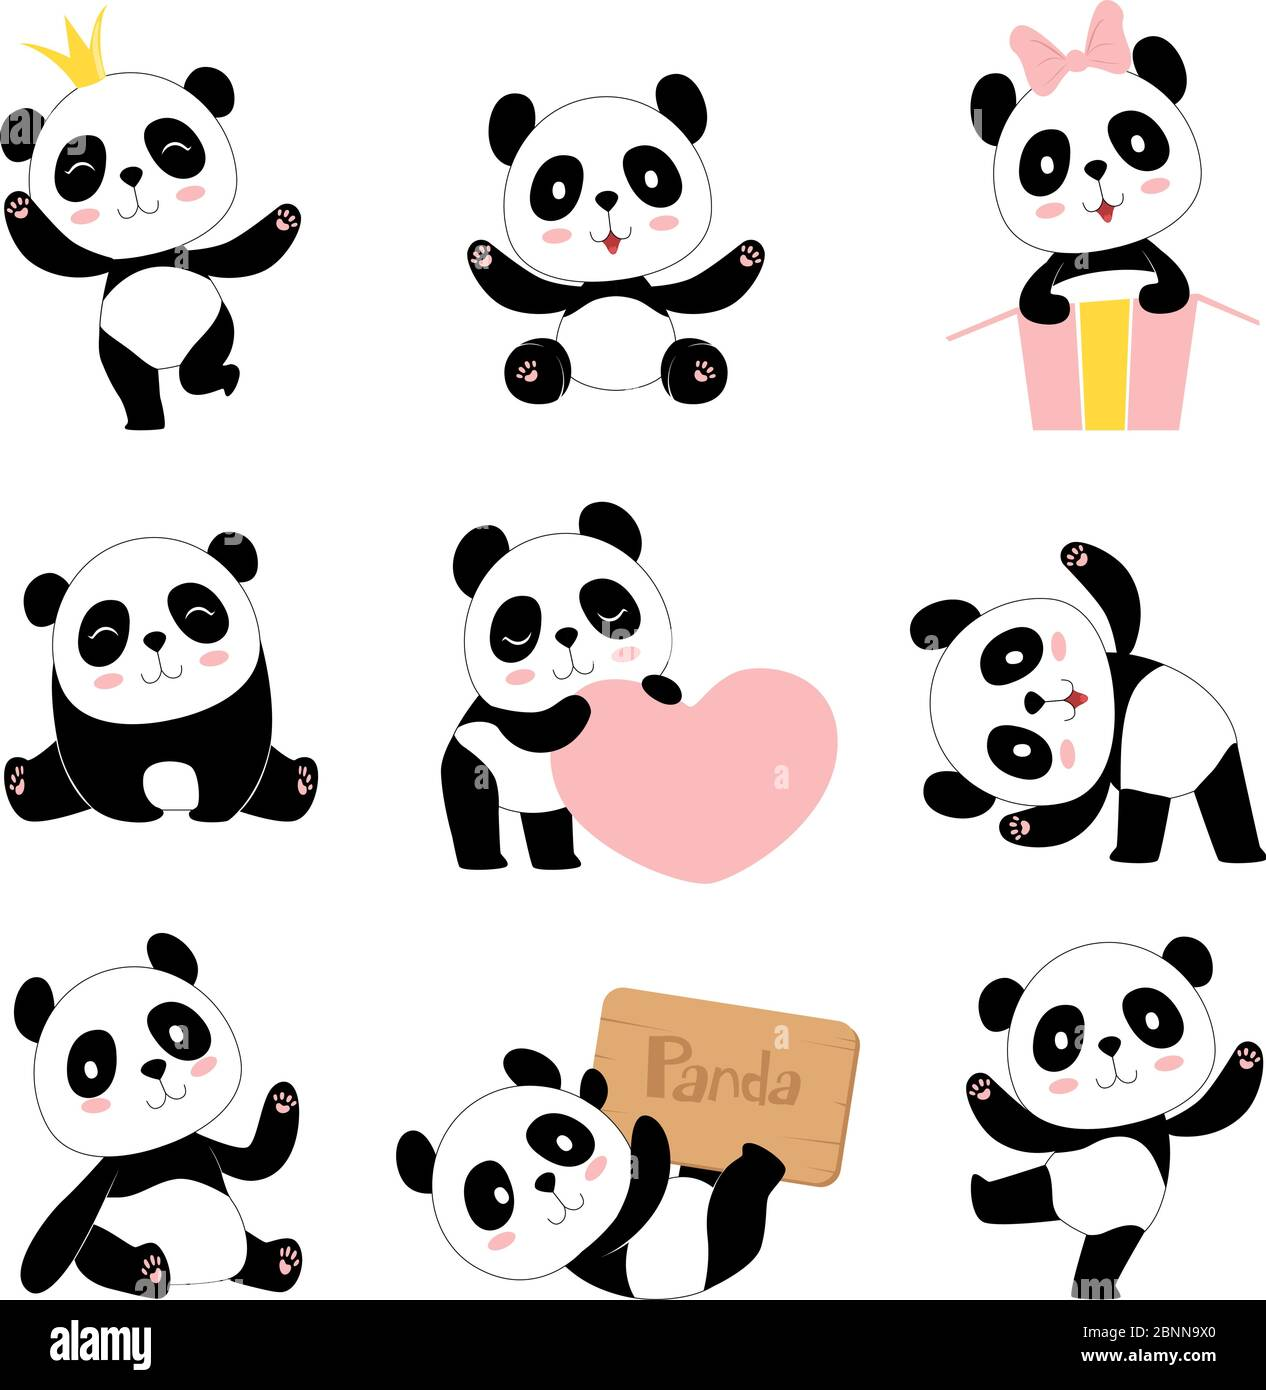 Cute Baby Pandas Toy Animals Chinese Symbols Panda Bear Adorable Funny Baby Mascot Vector Characters Collection In Cartoon Style Stock Vector Image Art Alamy